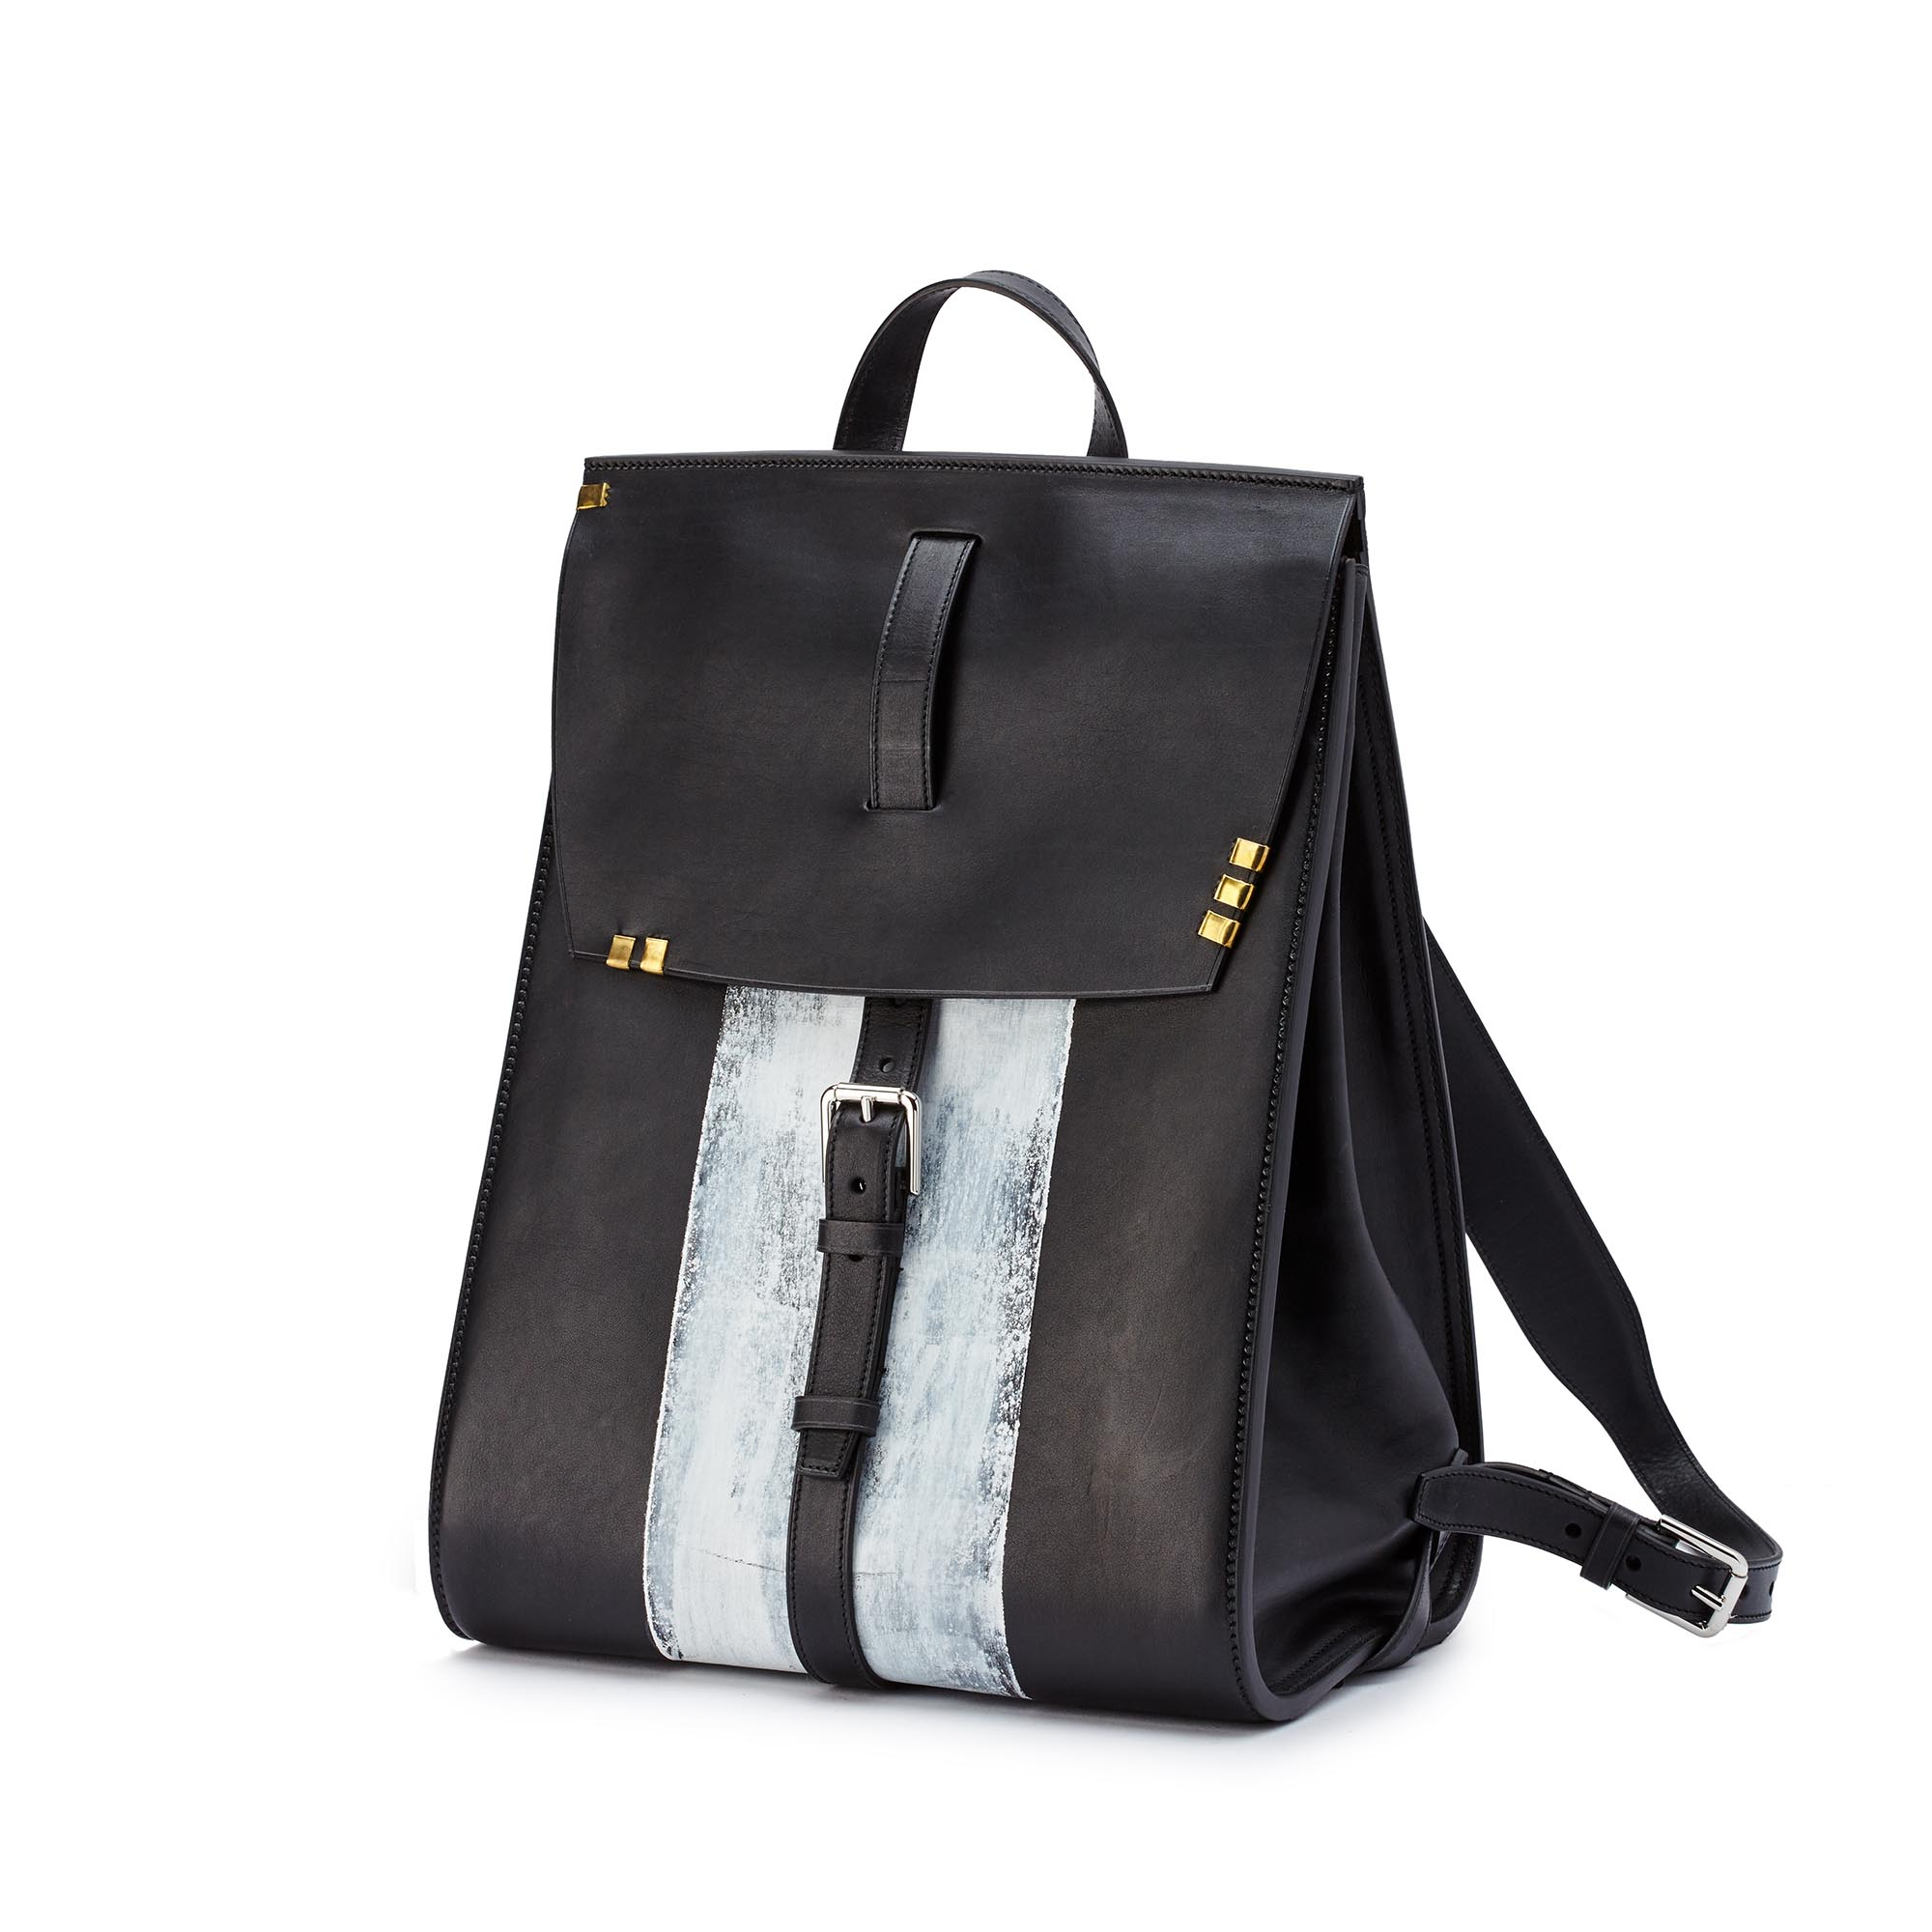 Signature-Backpack-black-ivory-rock-calf-bag-Bertoni-1949_01